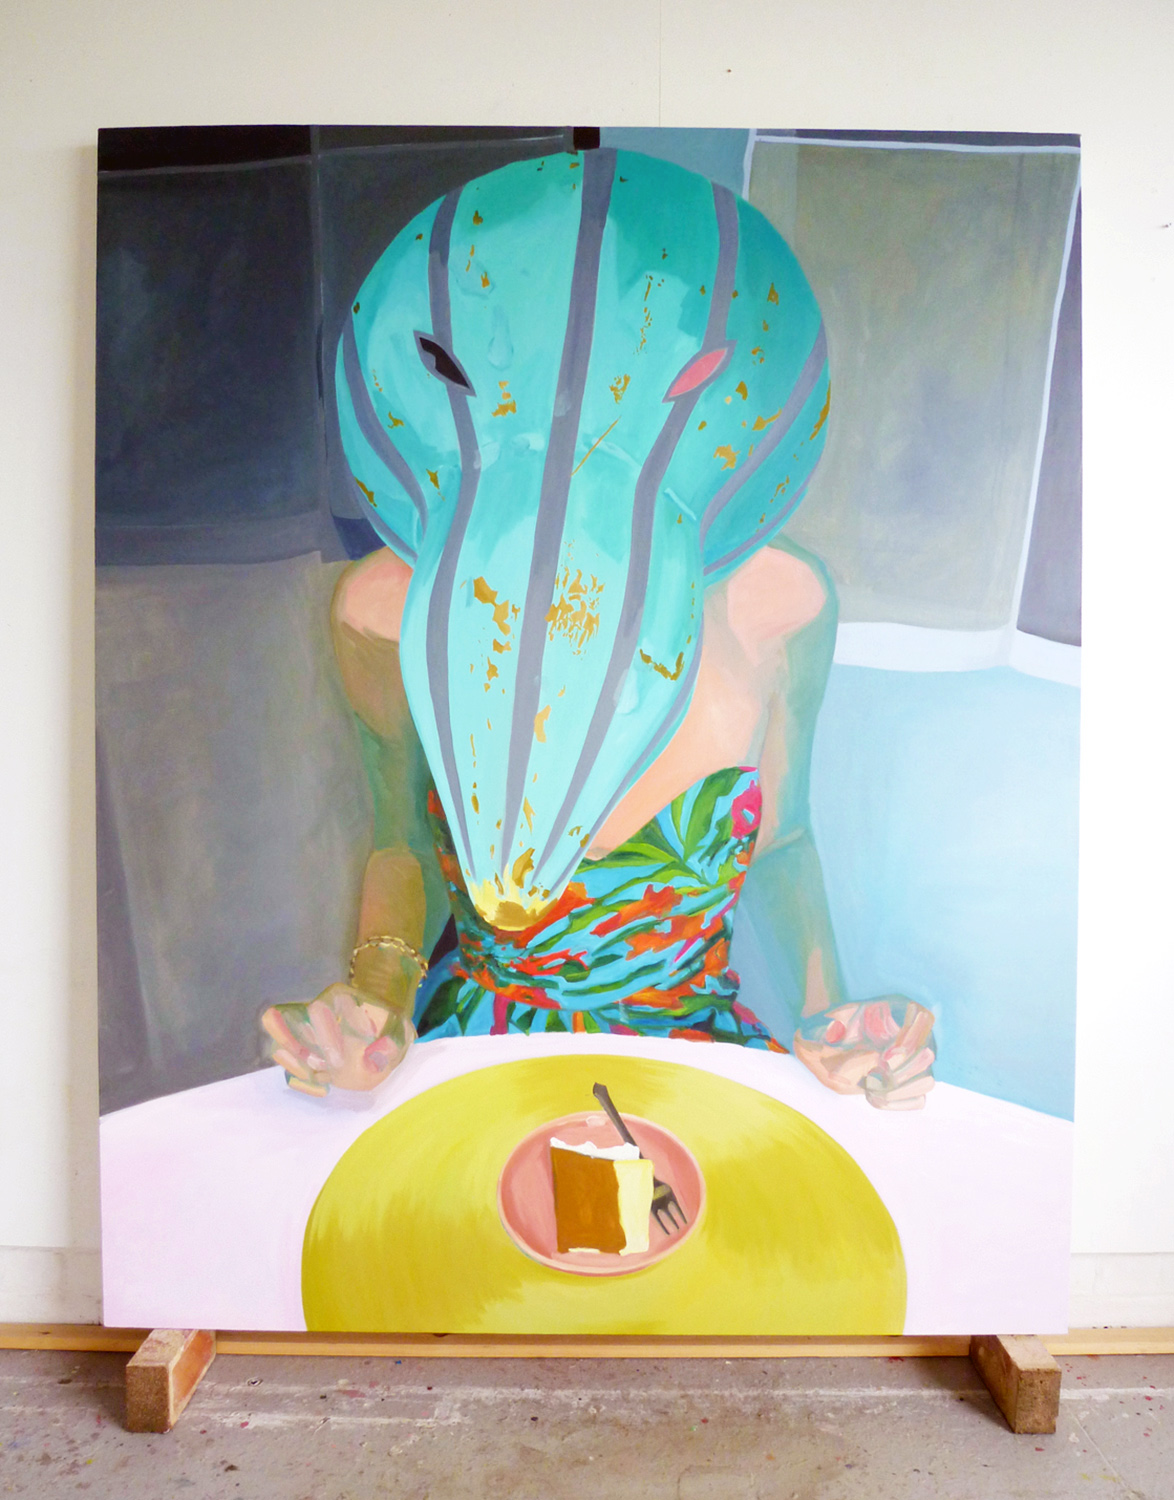 Dinner with patung (self-portrait), 2010  oil on canvas  185 x 150 cm